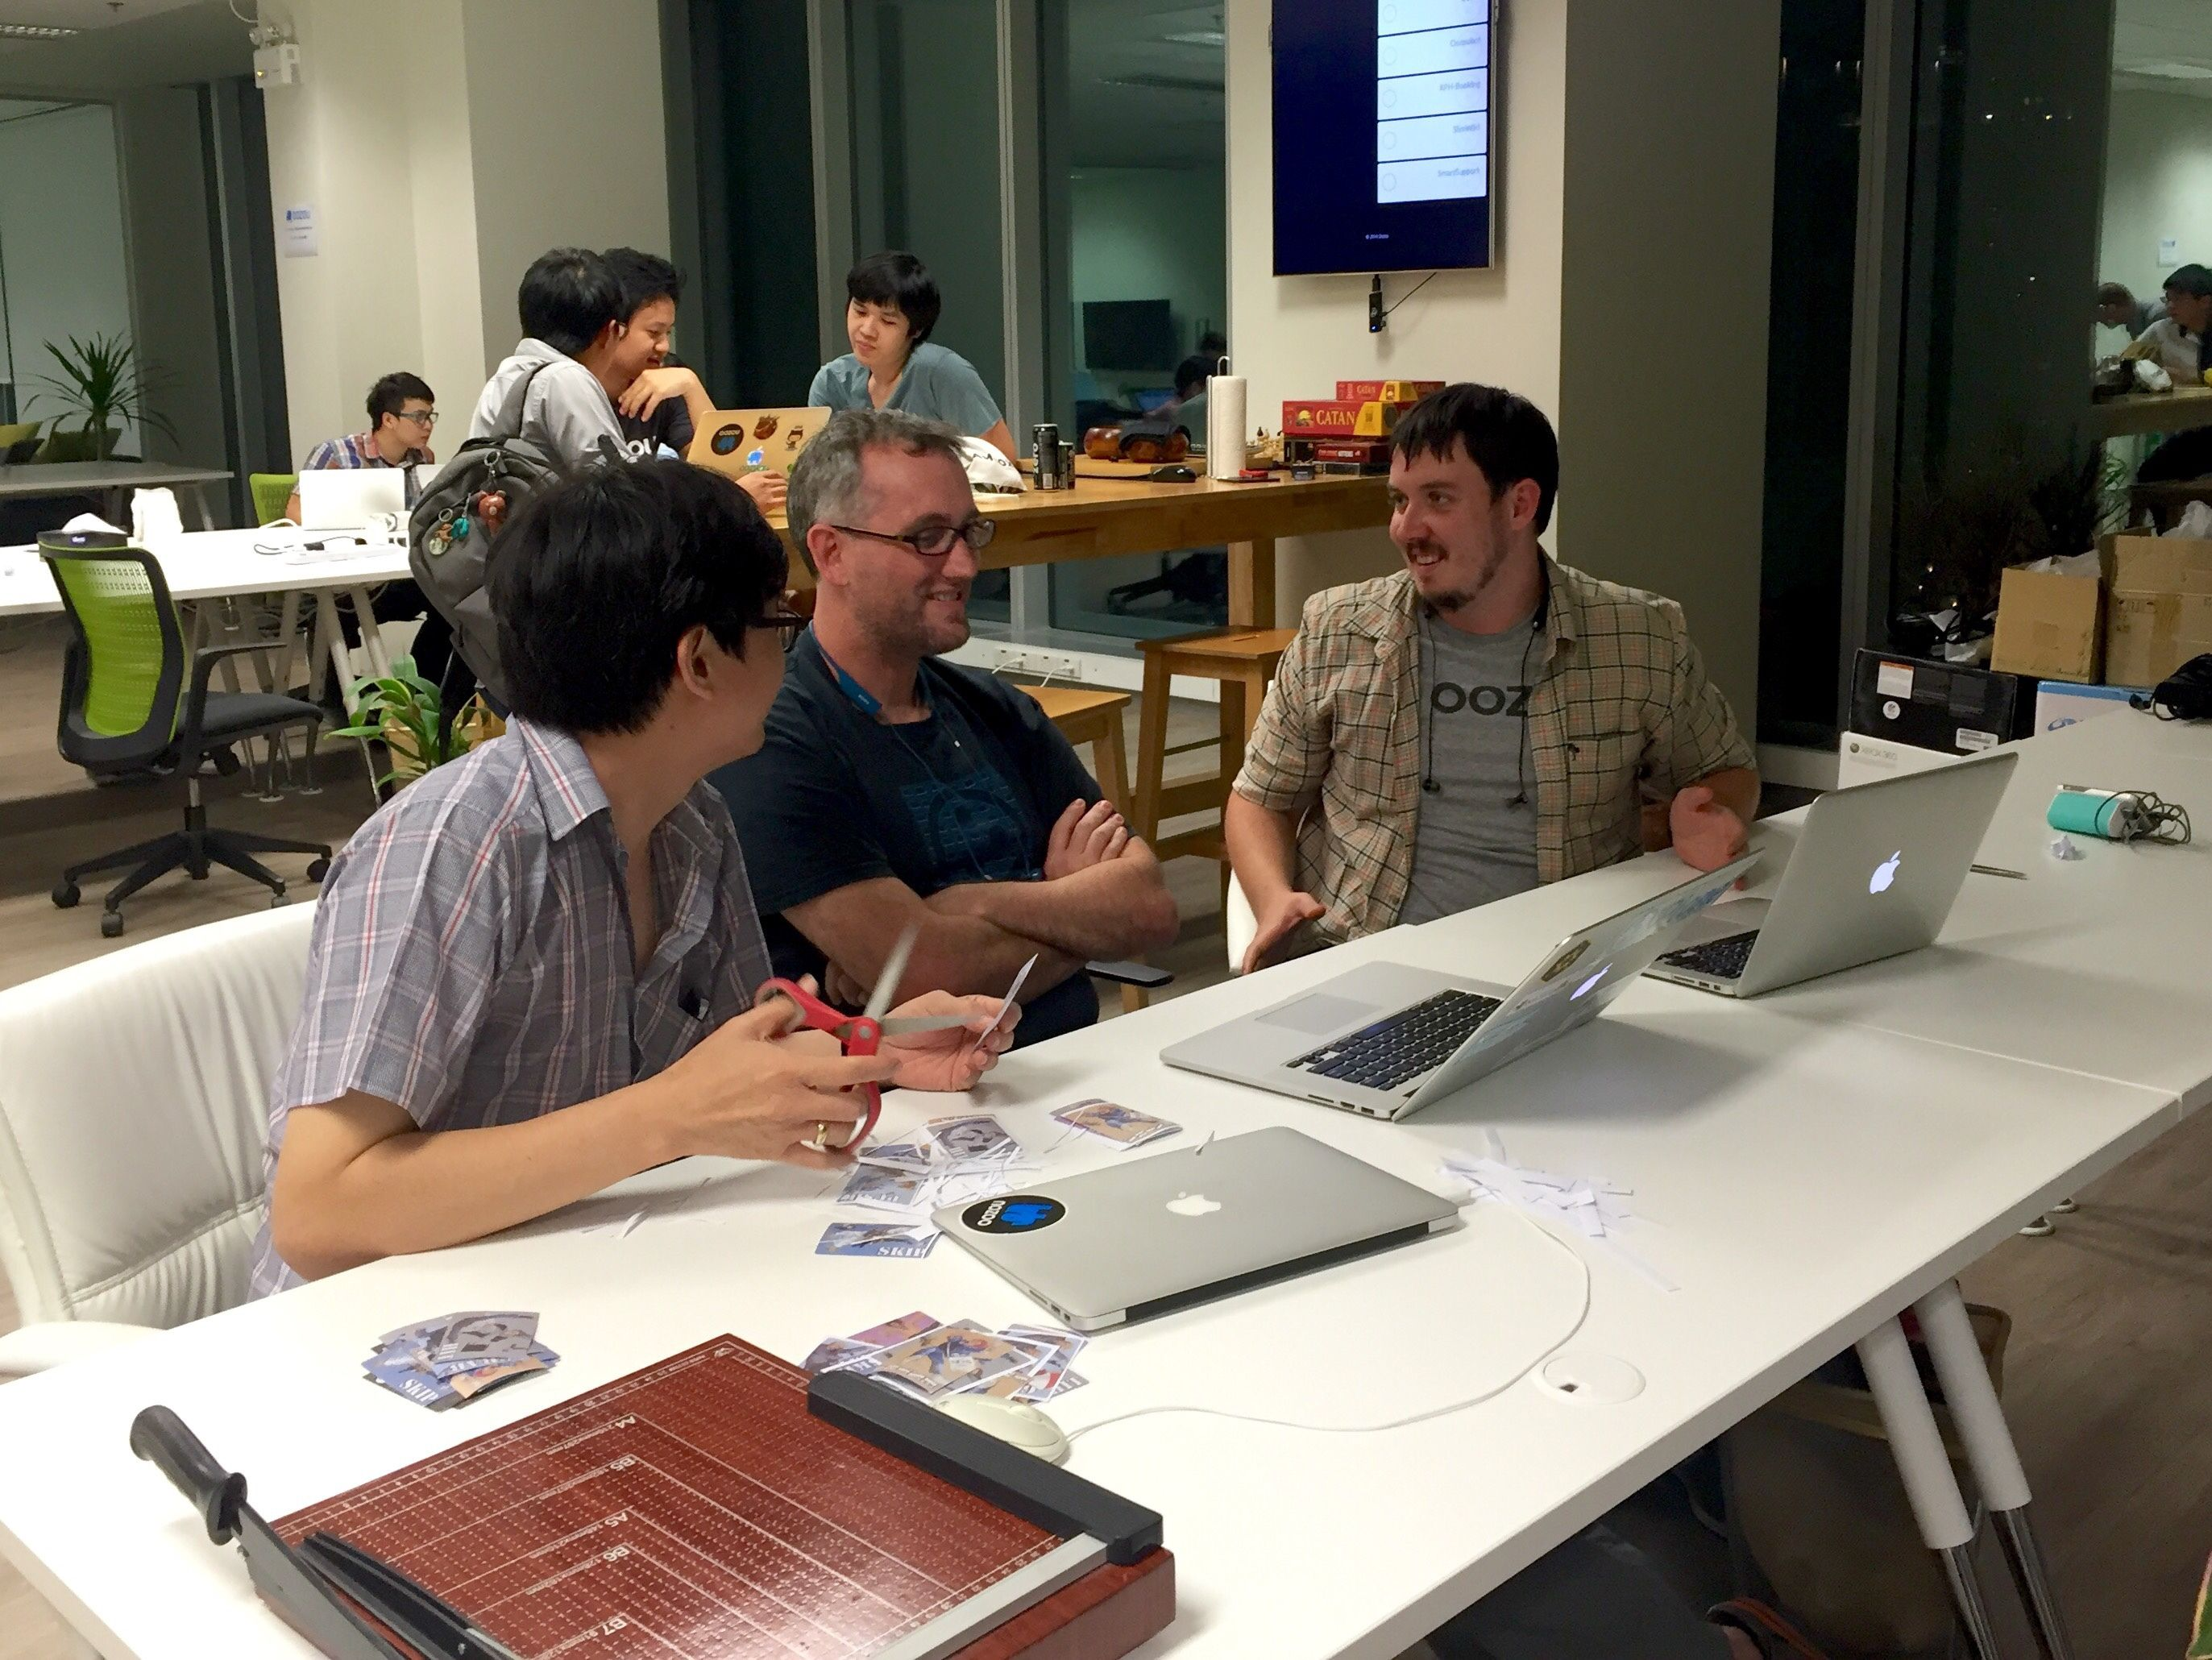 BKK/hack – Code, Make, Learn, Share